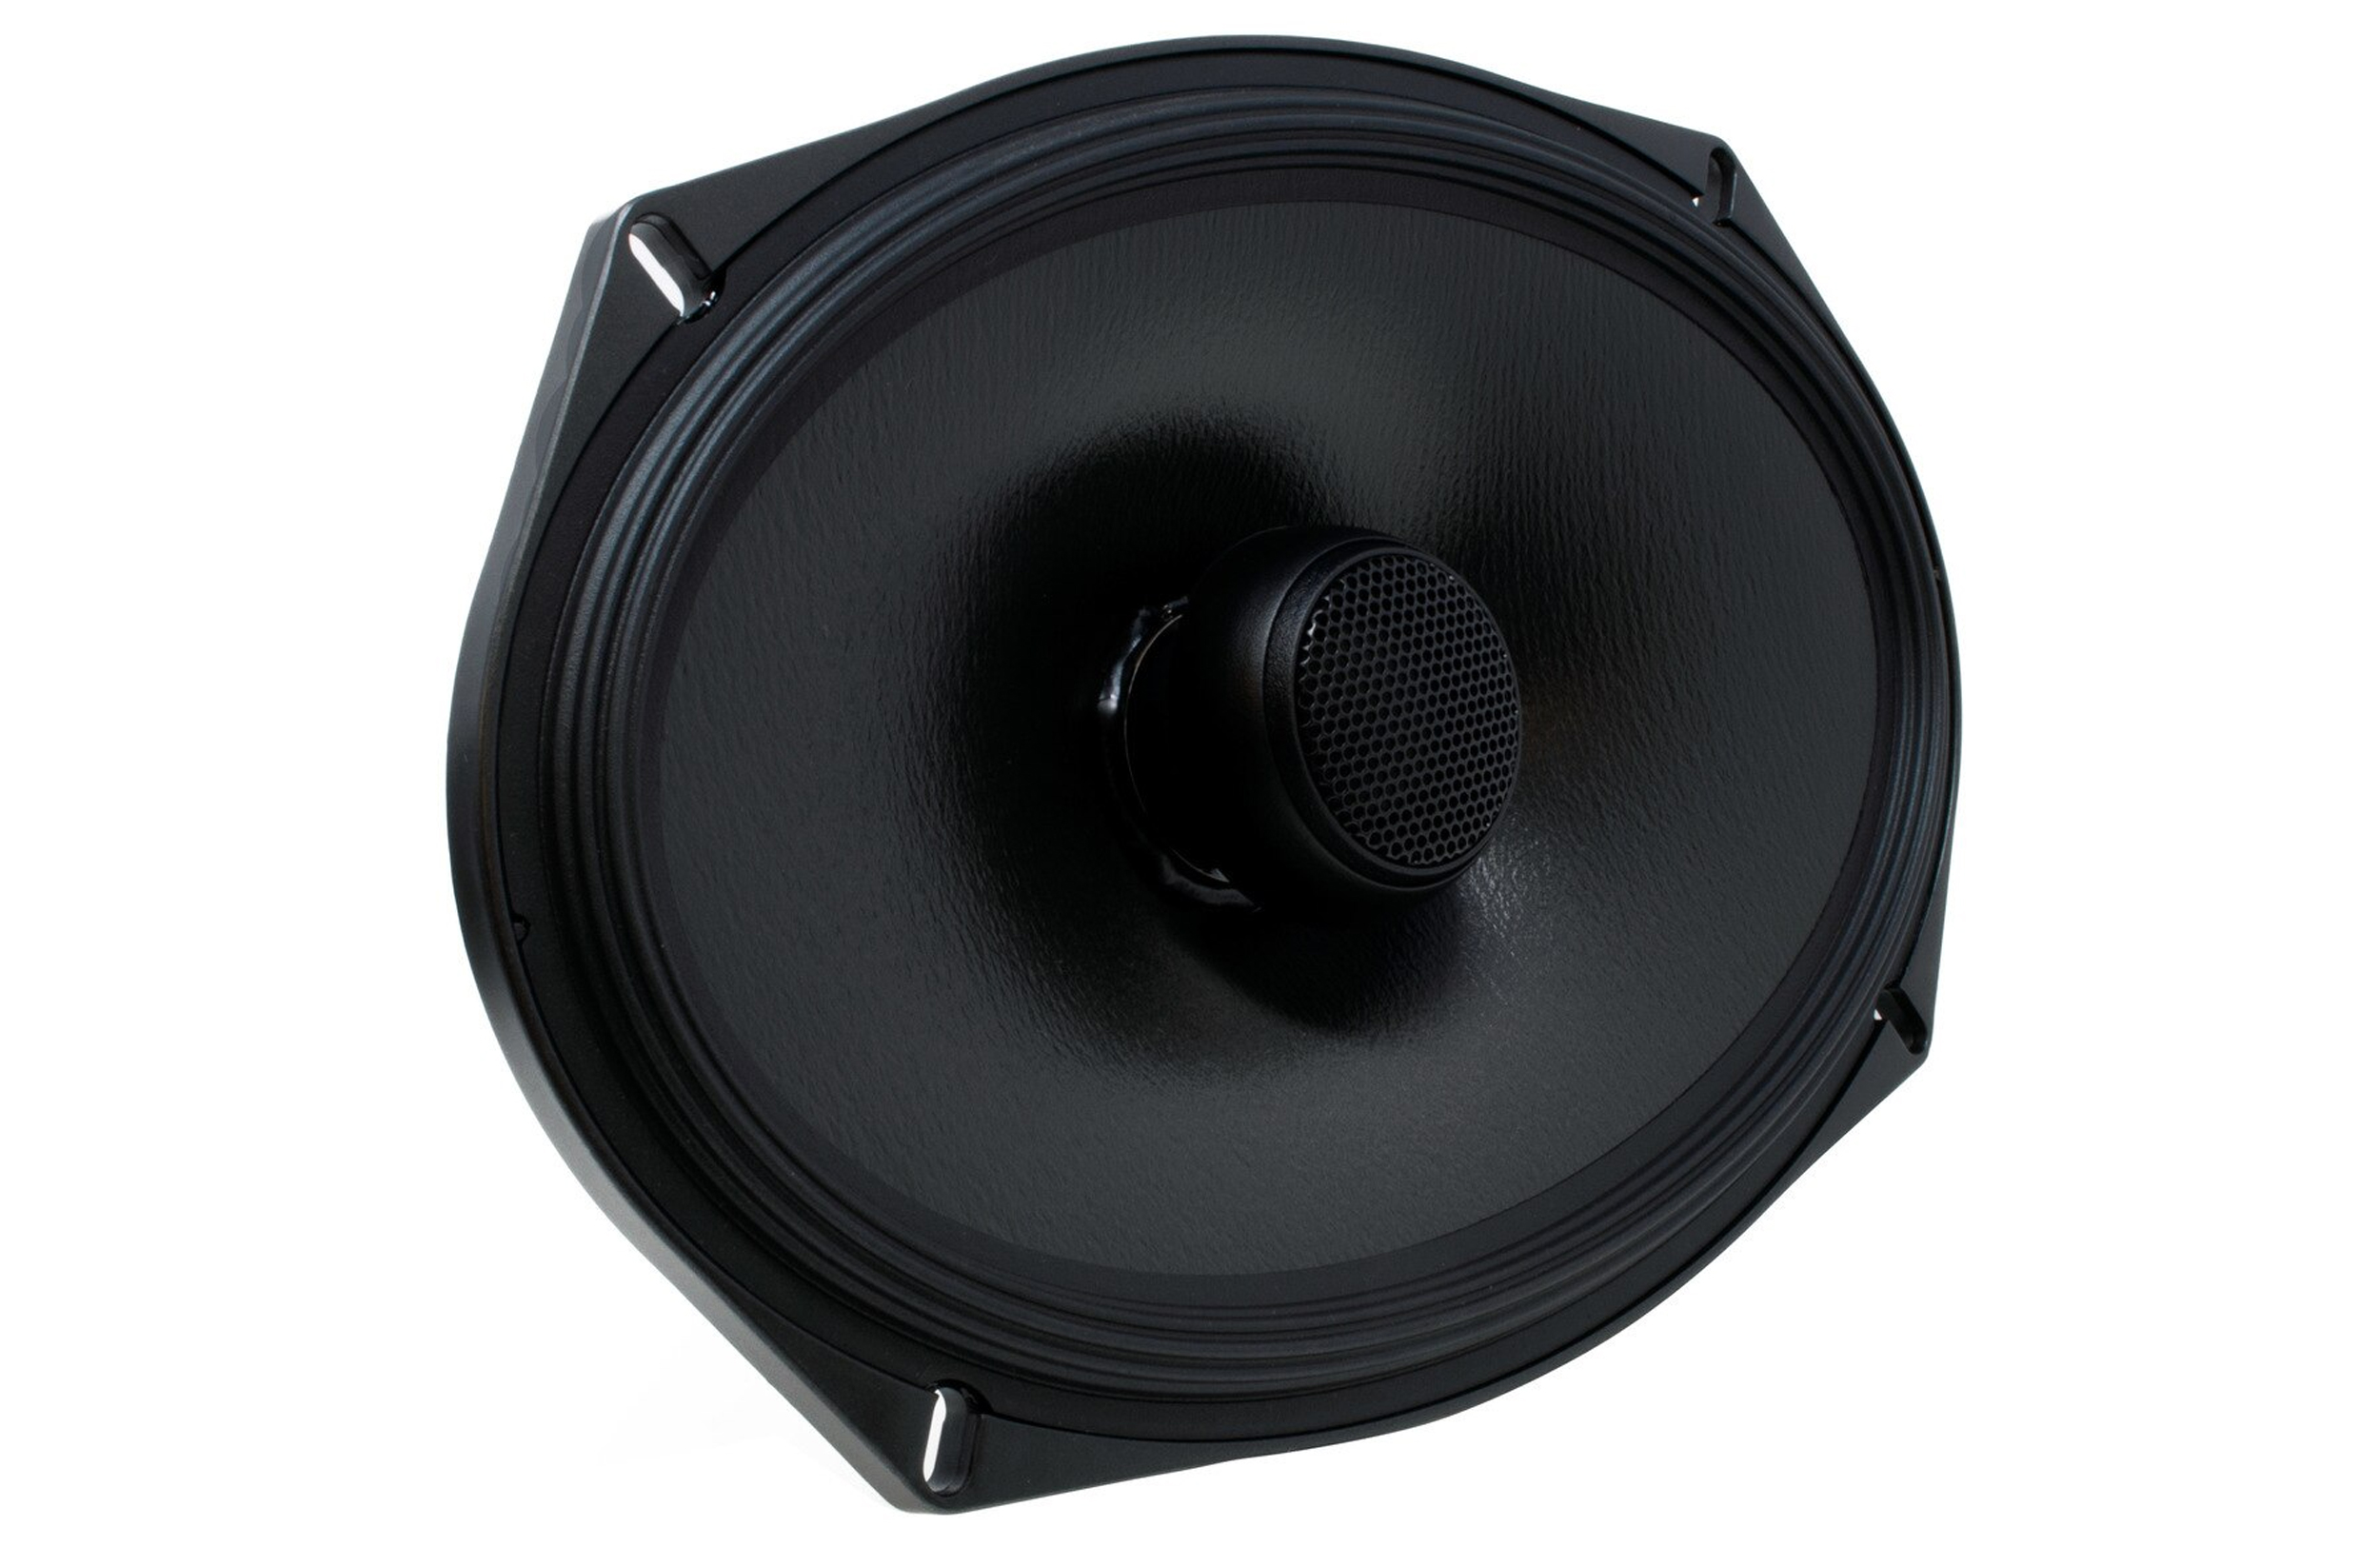 Alpine R-S69.2 R Series 6x9 inch 300 Watts Peak Power 2-Way Speakers